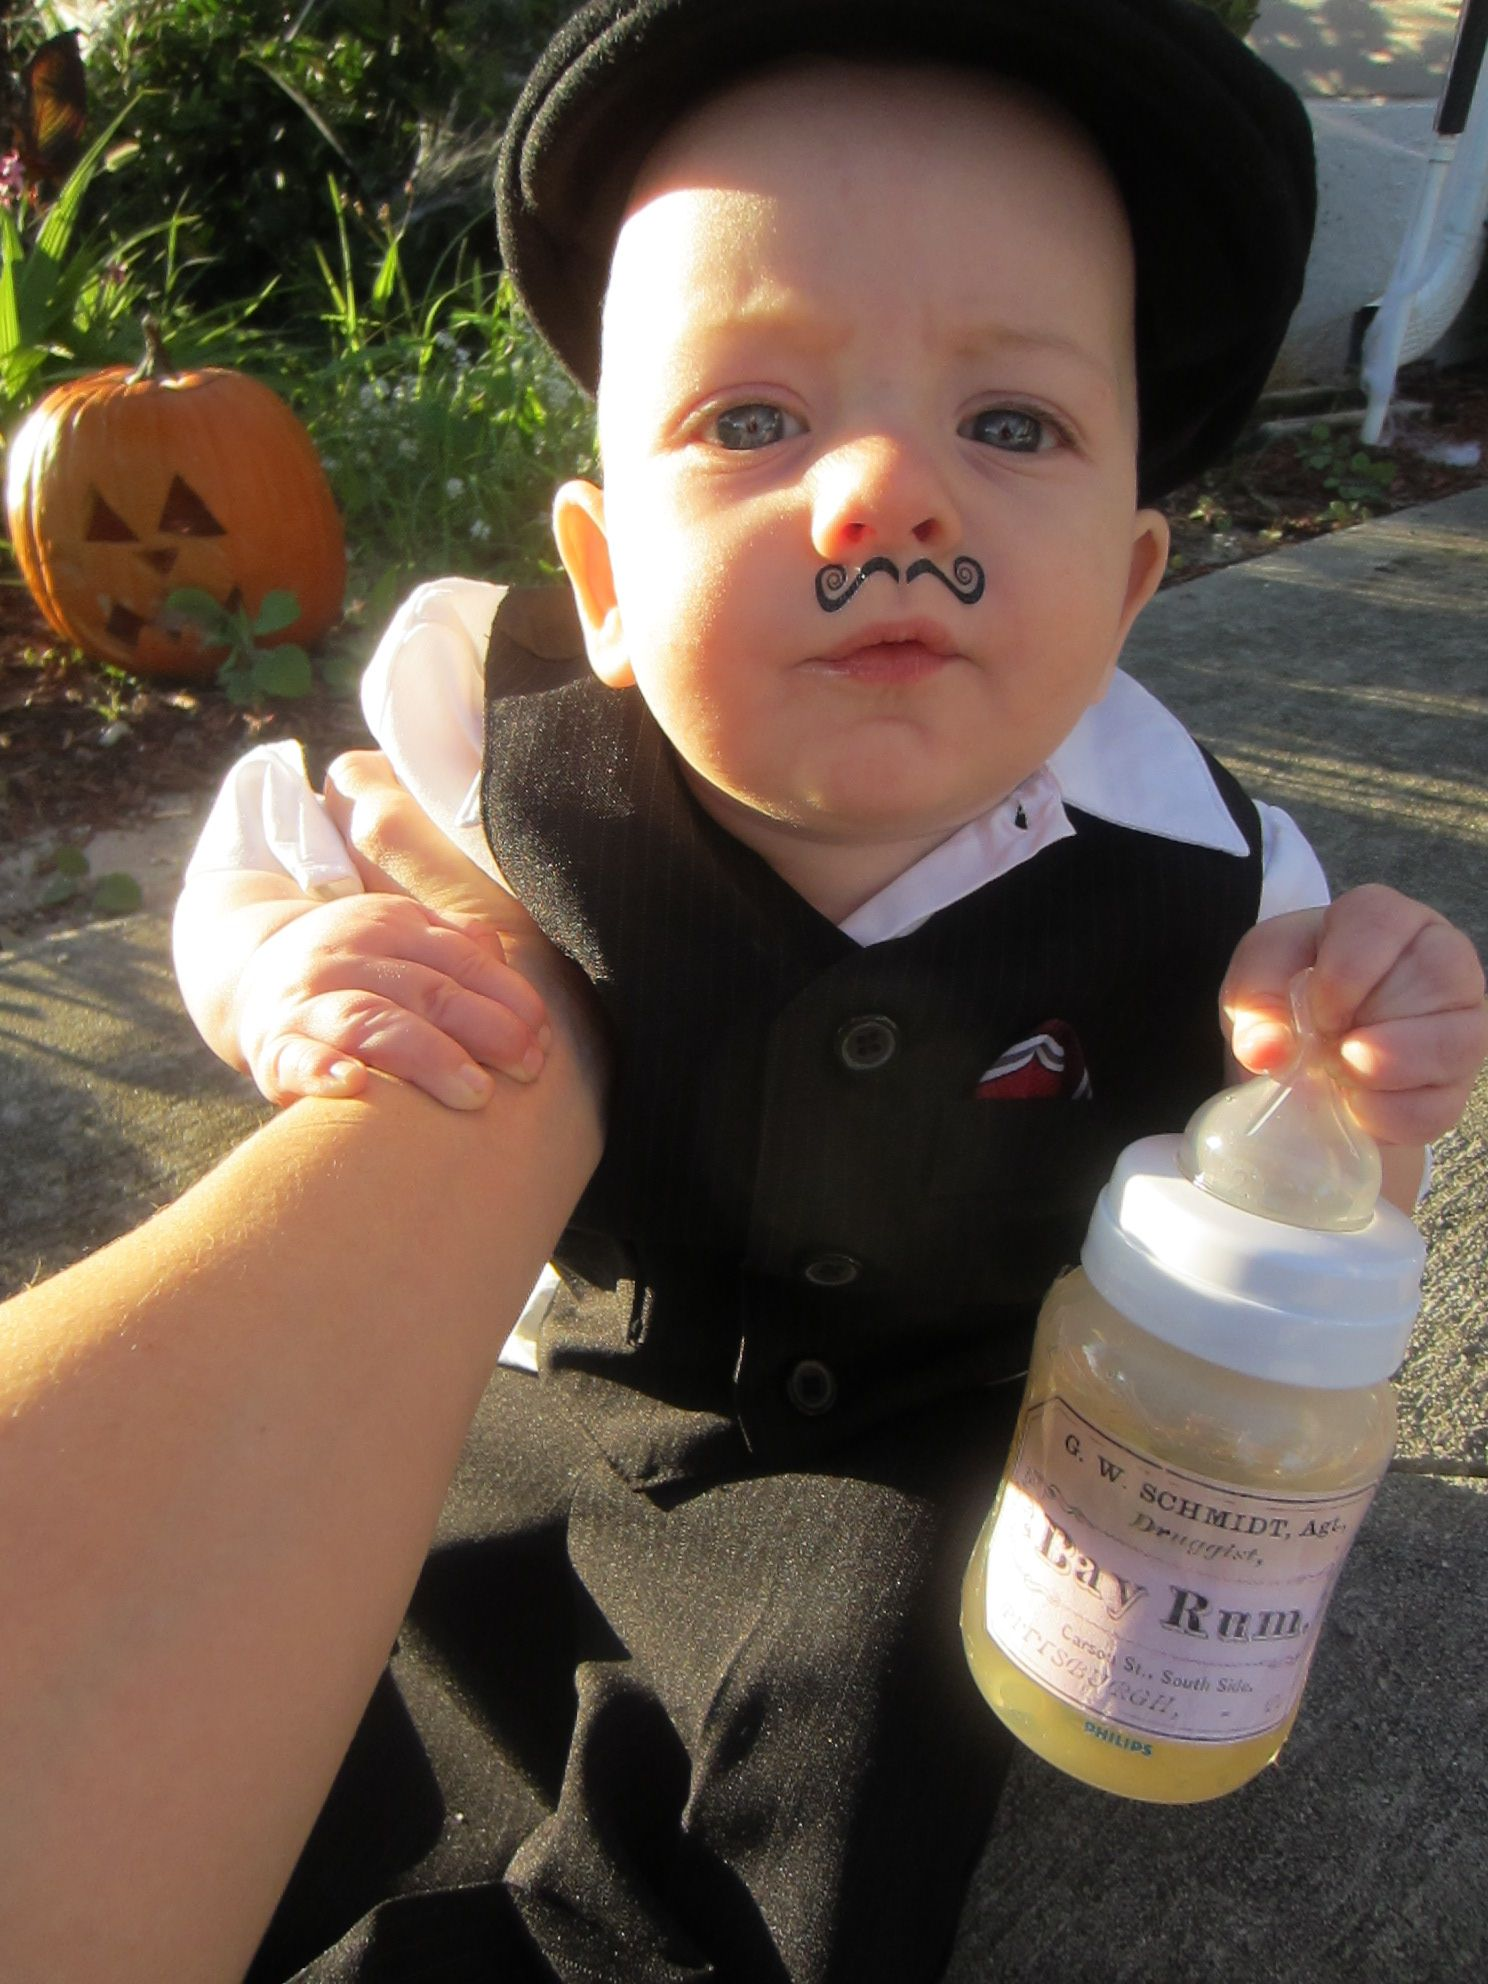 homemade halloween costume for baby infant toddler rum runner suit finger mustache temporary tattoo and bottle of chamomile tea with a rum label from - Halloween Costume Ideas Mustache